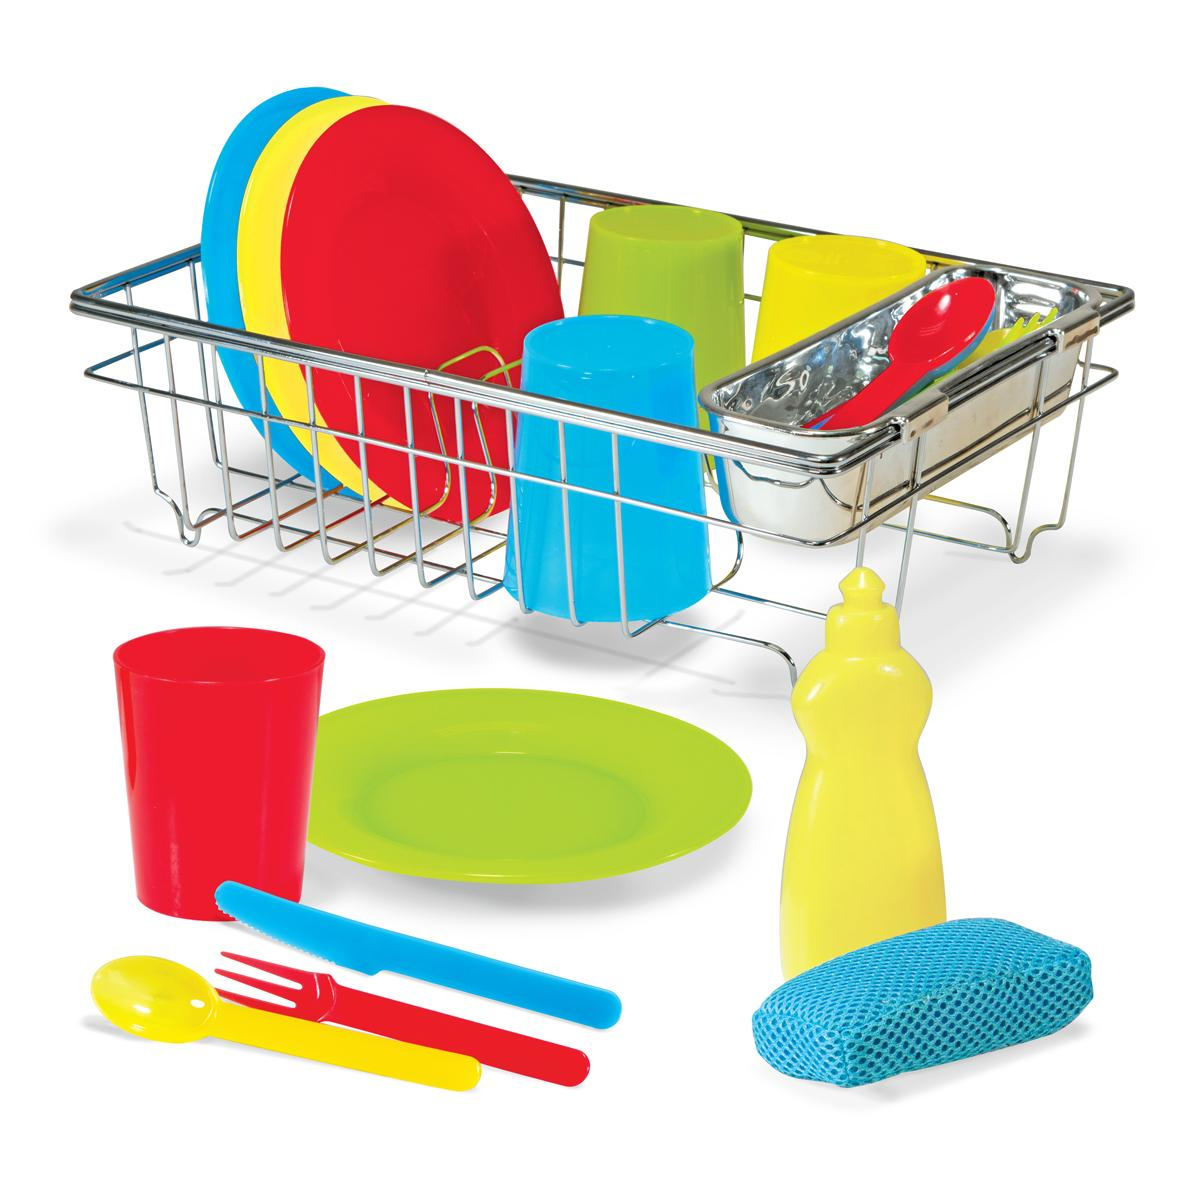 Melissa doug let 39 s play house wash and dry for Kitchen set for 1 year old